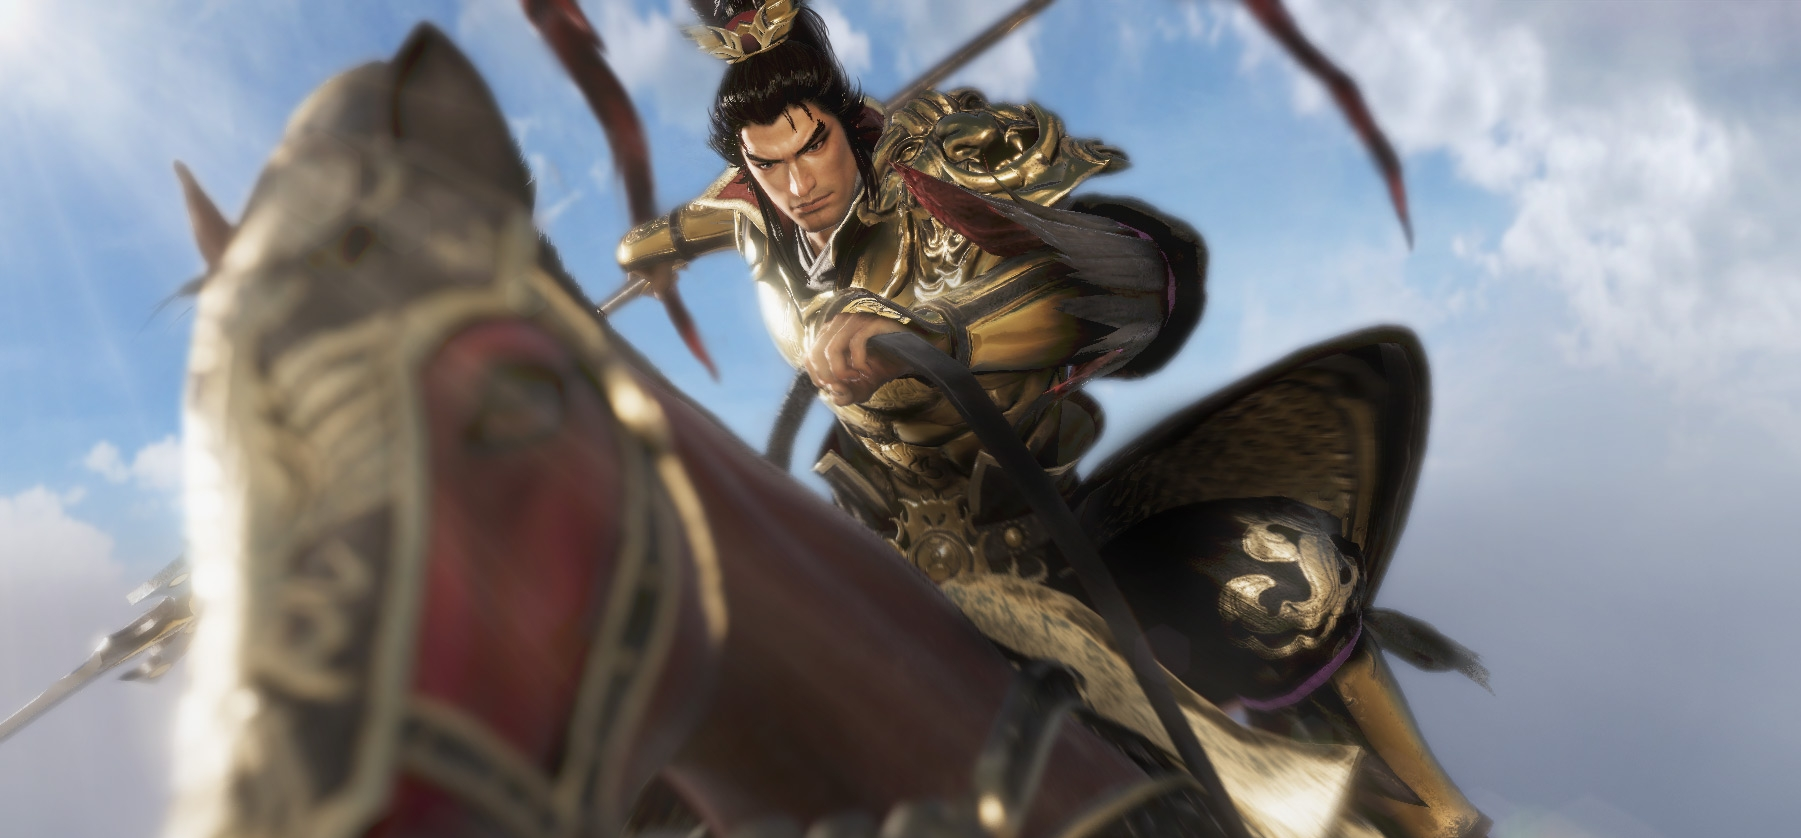 Koei Tecmo Releases Dynasty Warriors 9 Game and DLC Bundles